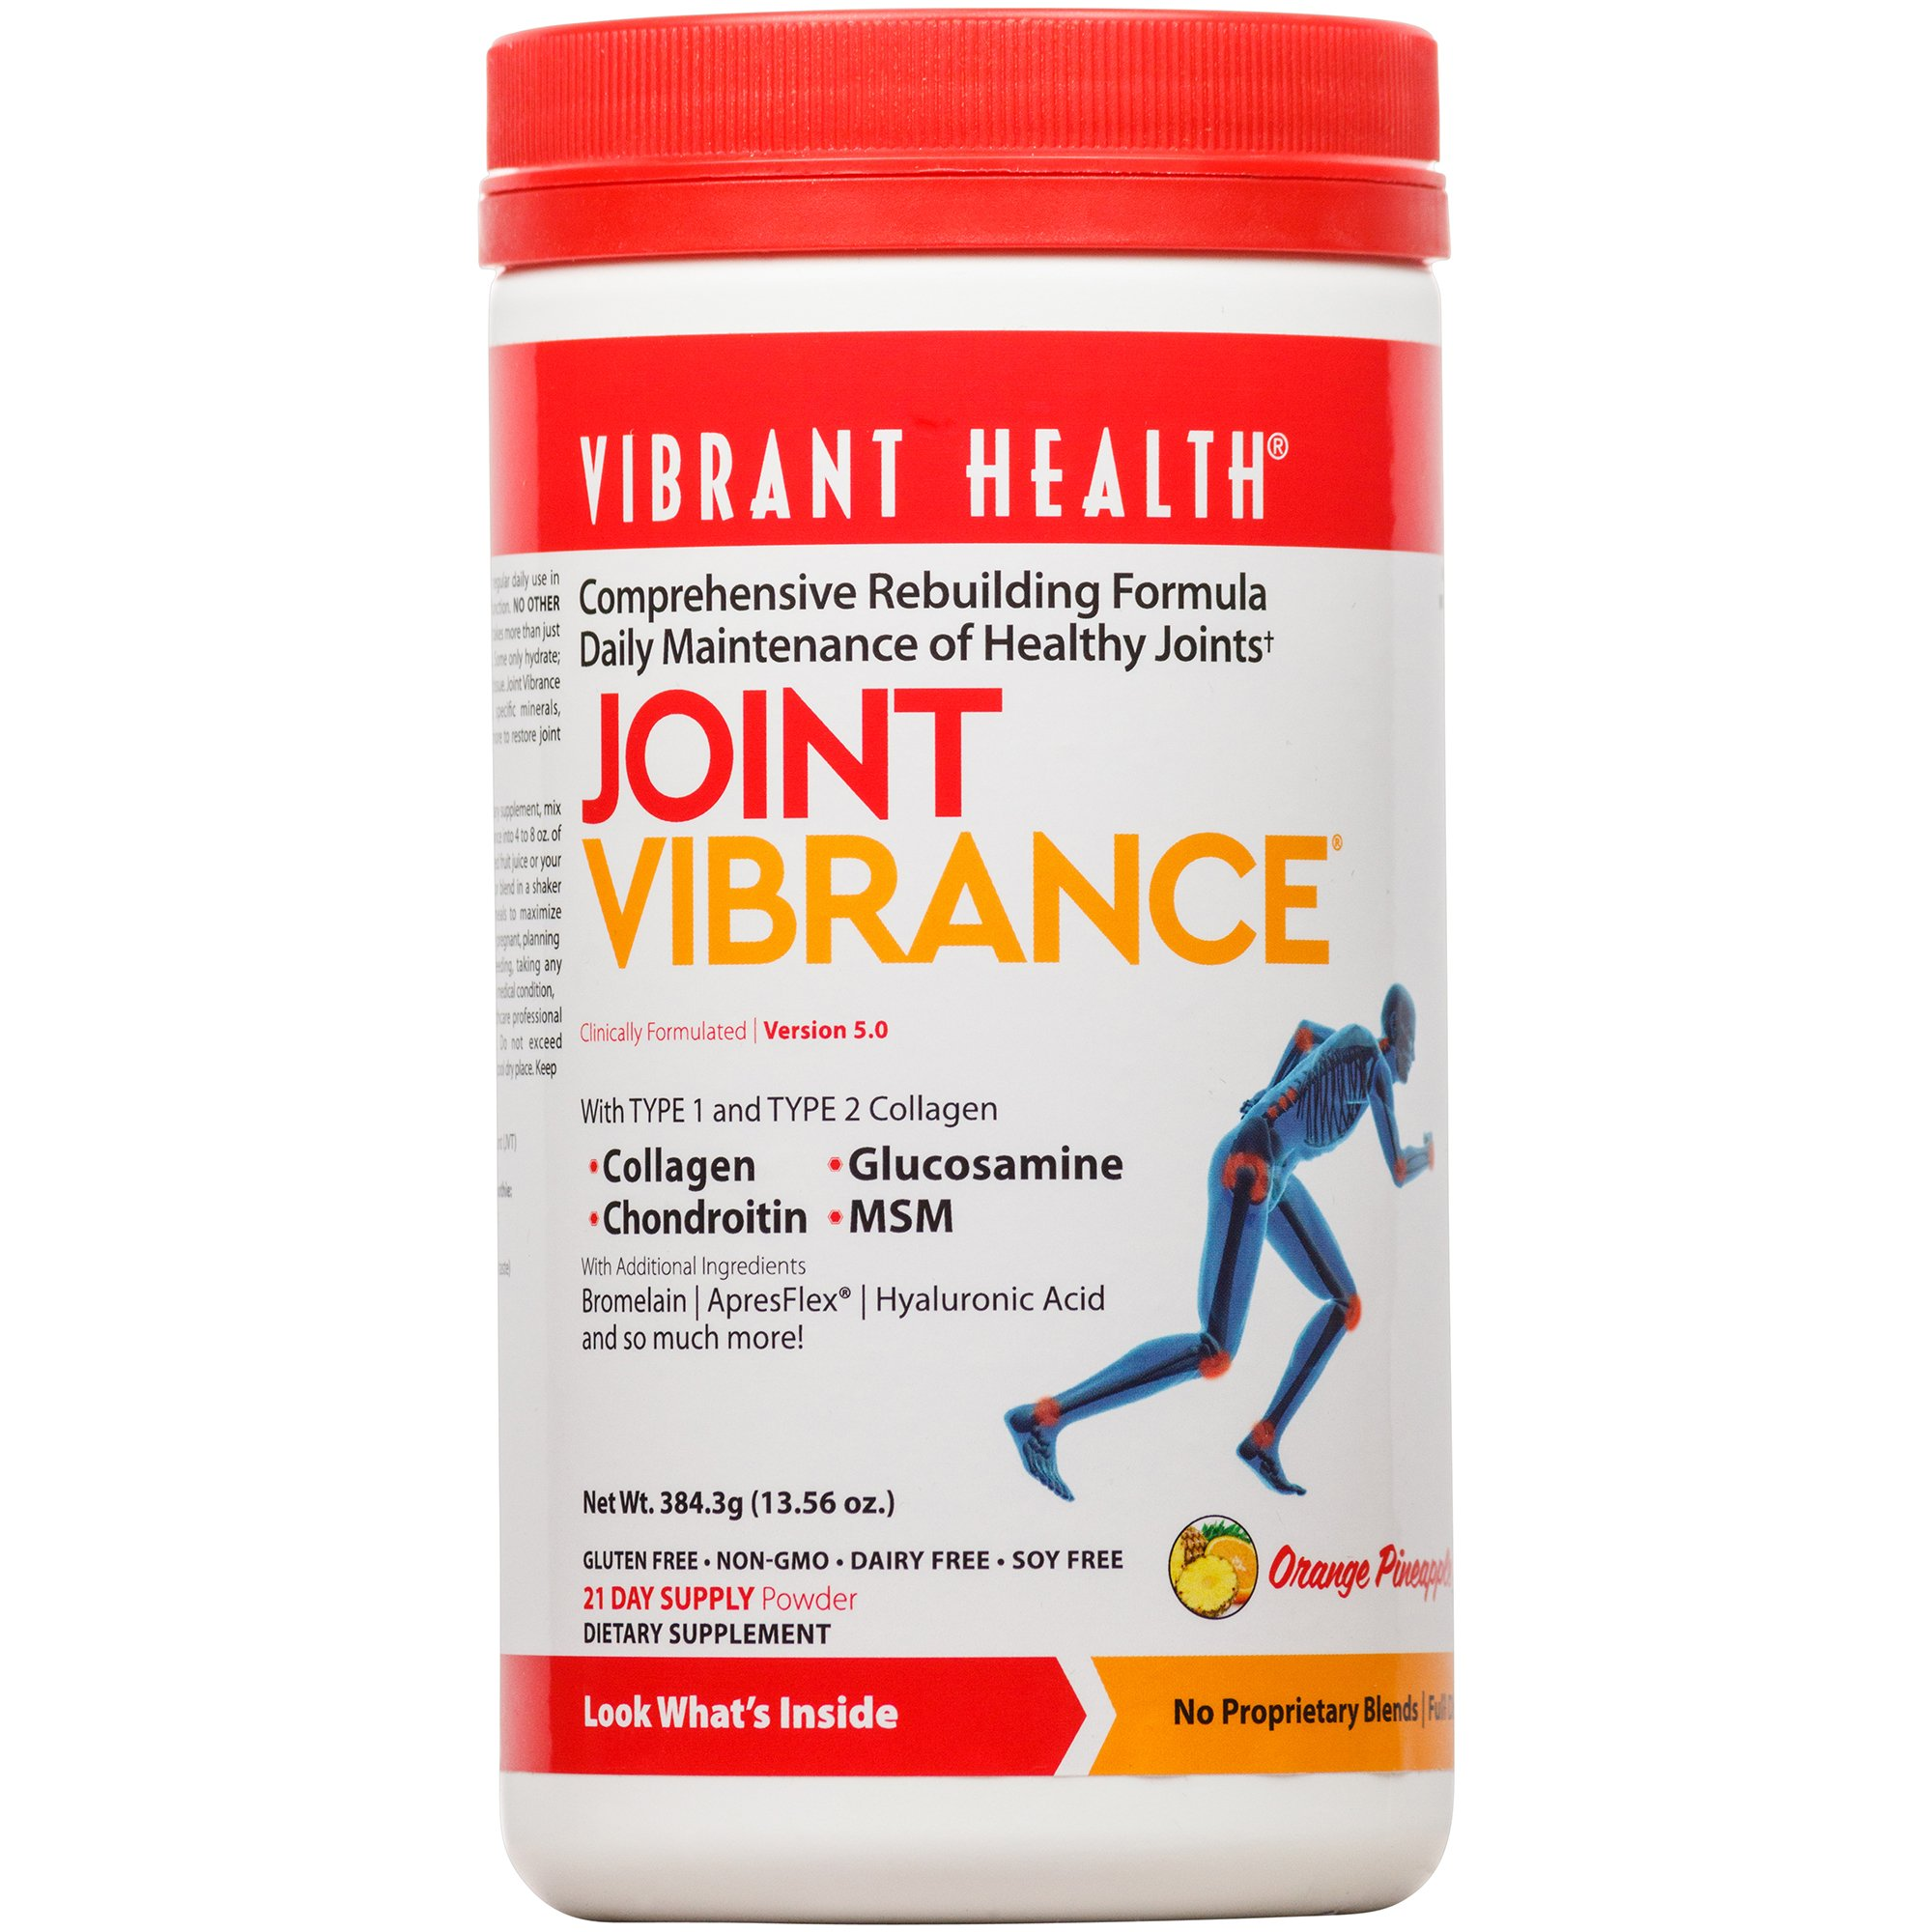 Vibrant Health - Joint Vibrance - Comprehensive Joint Support with Chondroitin and Glucosamine for Daily Maintenance, 13.56 ounce (FFP)